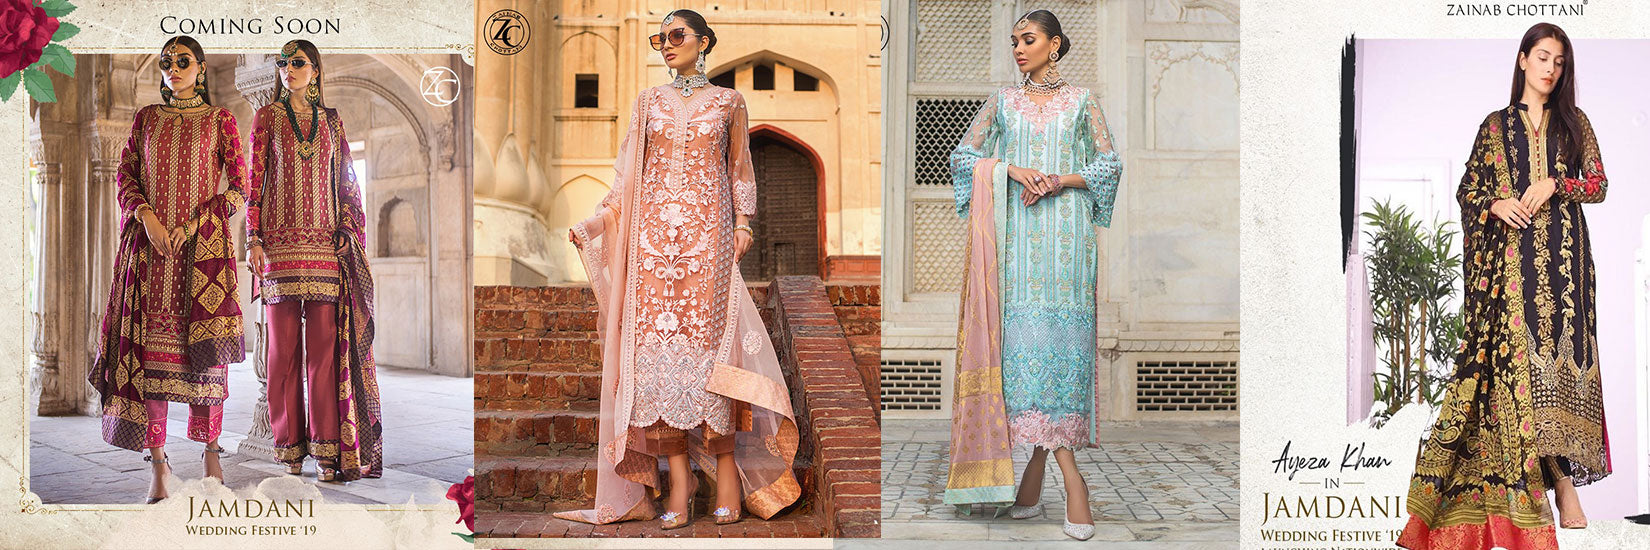 img_zainab_chottani_jamdani_wedding_edition_chiffon_collection_awwal_boutique